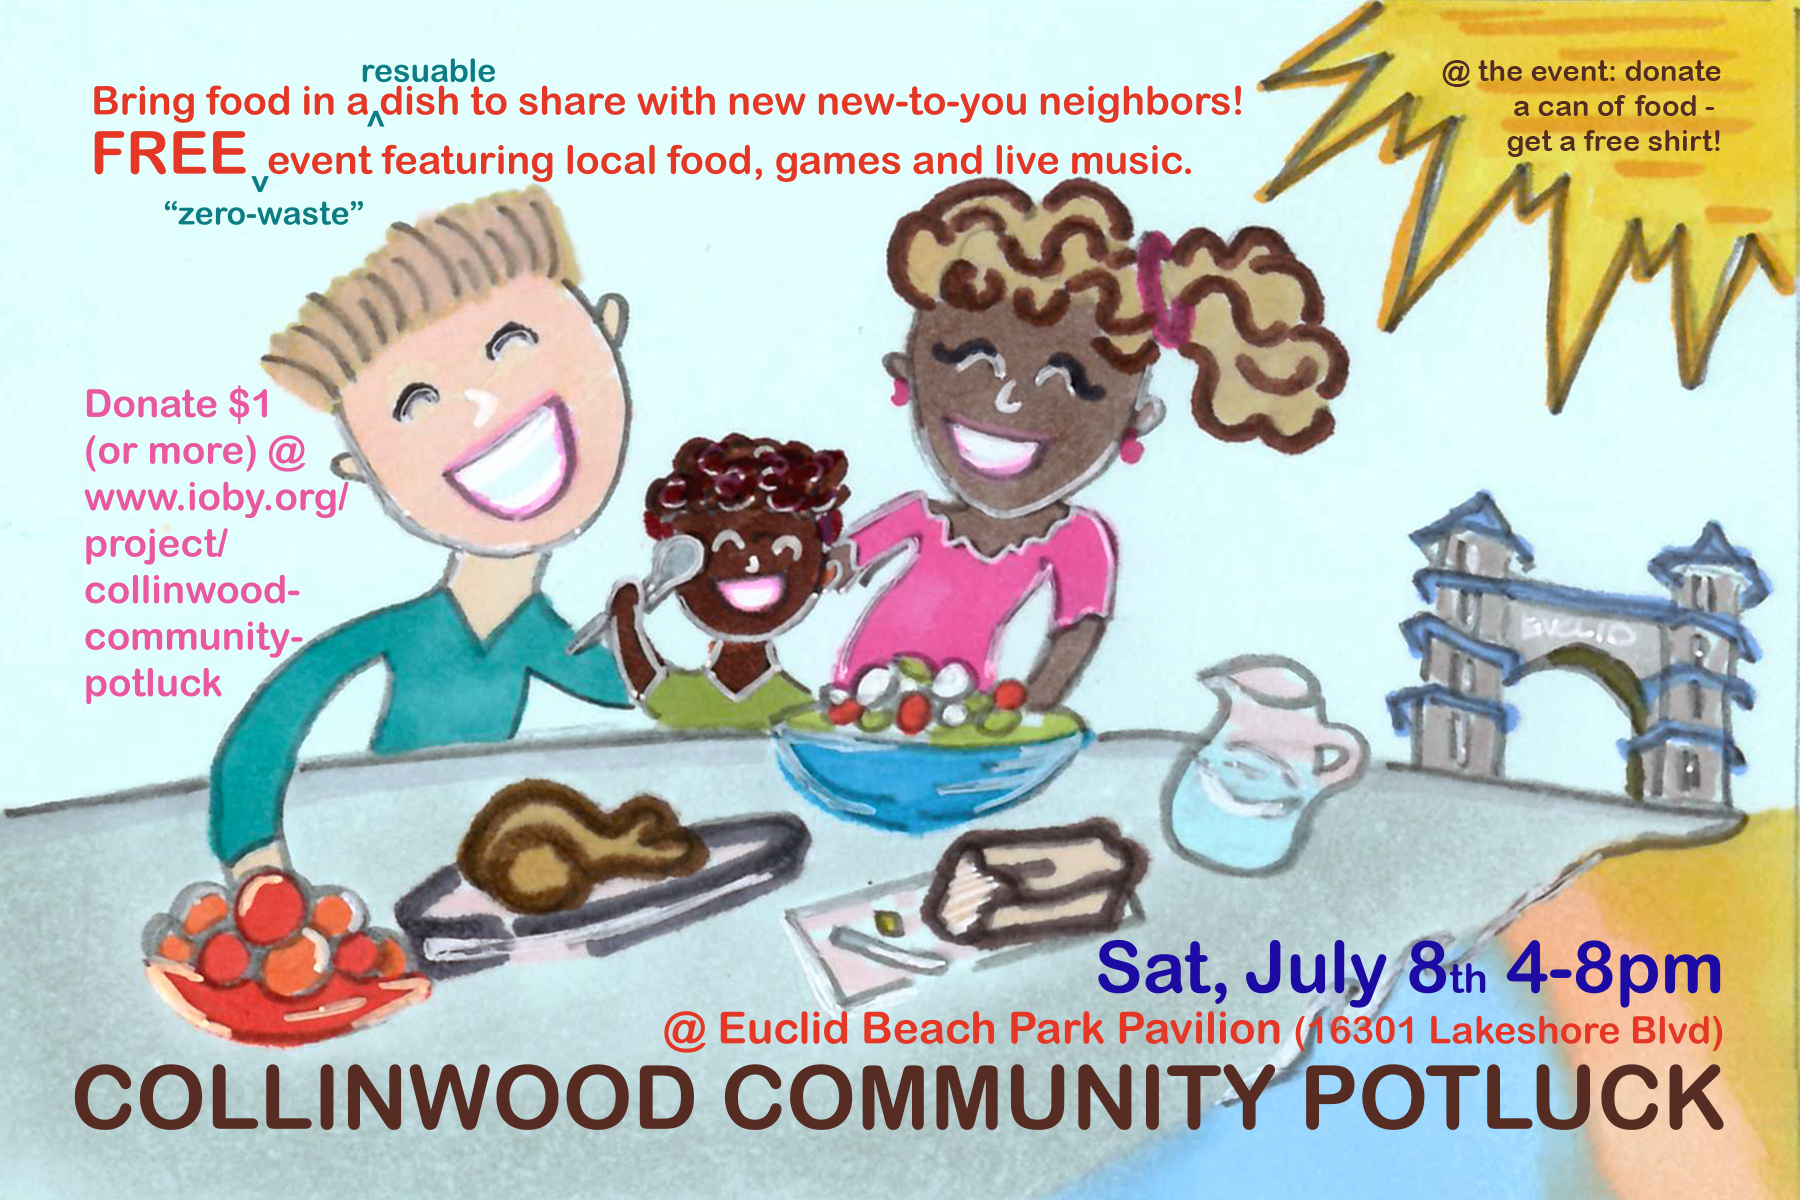 Join us at the Collinwood Community Potluck for food, fun and great neighbors in an awesome neighborhood. We are raising funds to put on the event through Ioby.org. Please consider a donation and save-the-date for the Potluck on Saturday, July 8th.